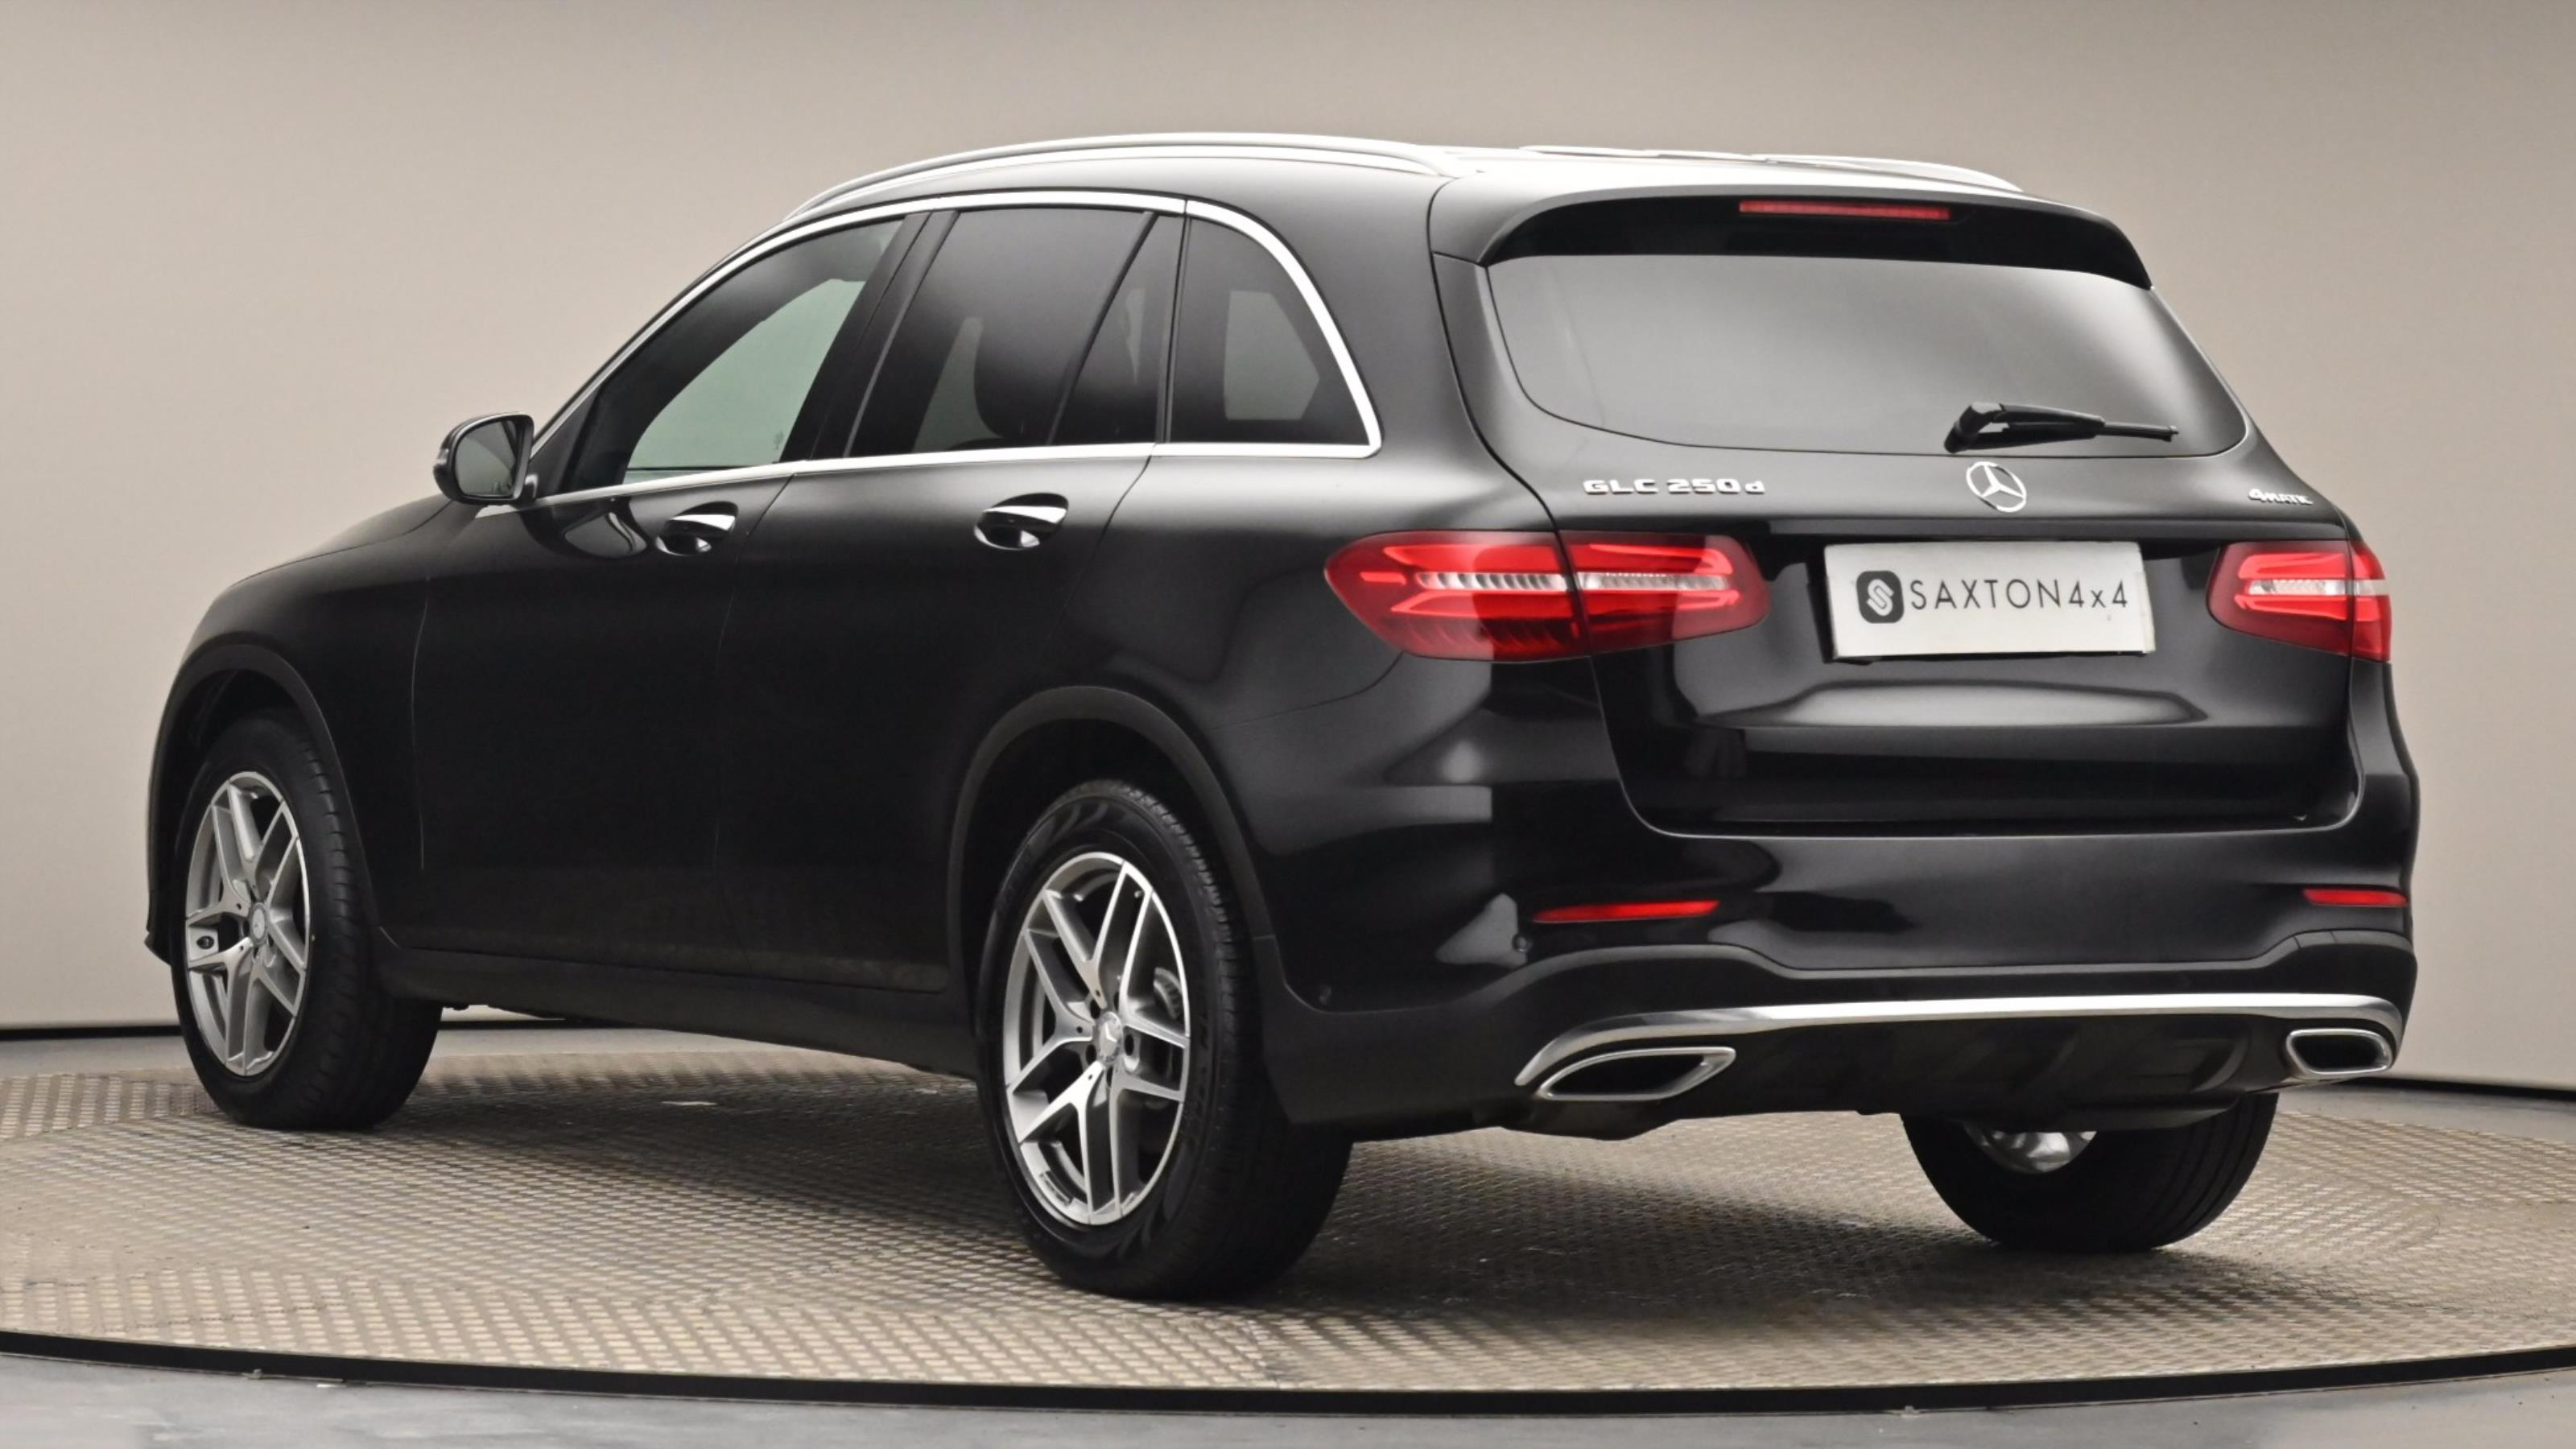 Used 16 Mercedes-Benz GLC GLC 250d 4Matic AMG Line Premium 5dr 9G-Tronic Black at Saxton4x4